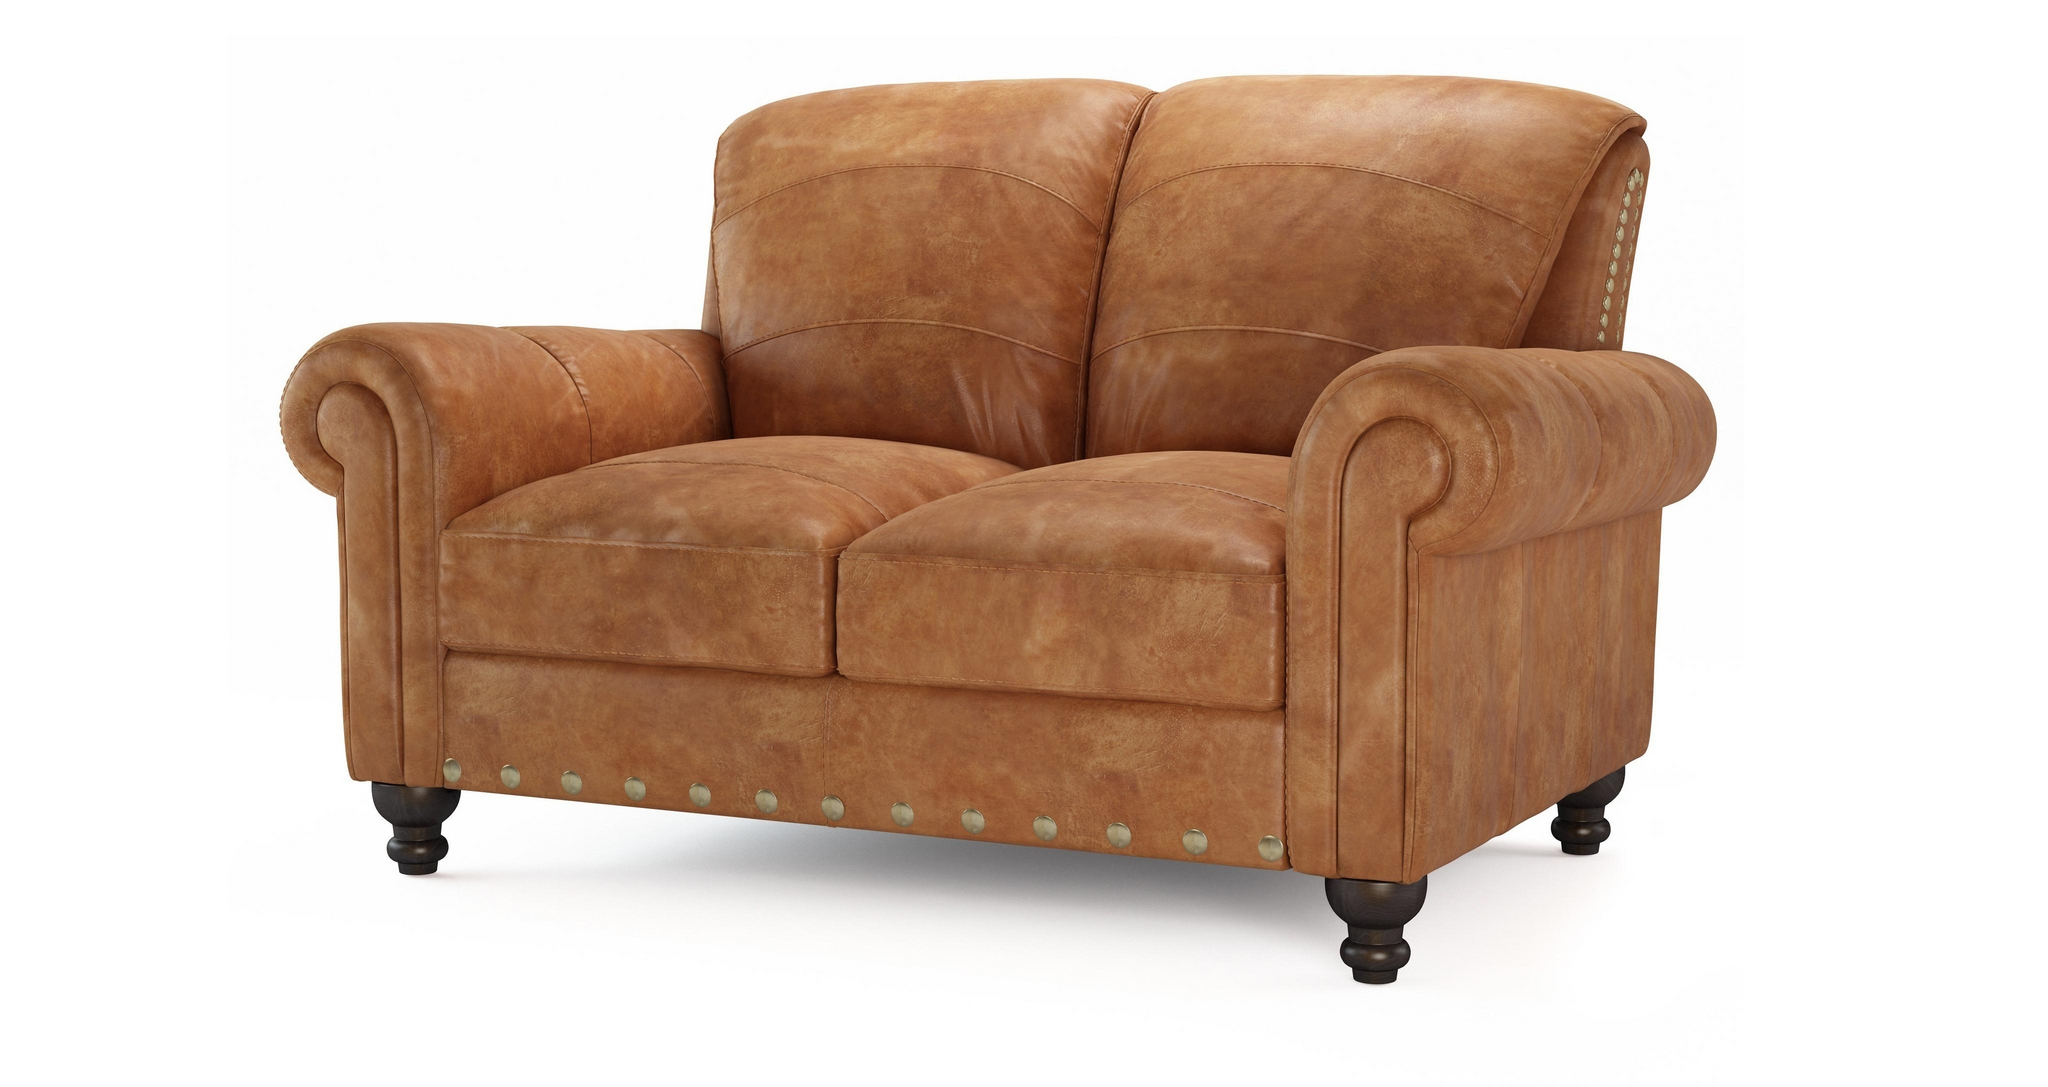 Dfs Perth 2 Seater Settee 100 Real Natural Leather Tan